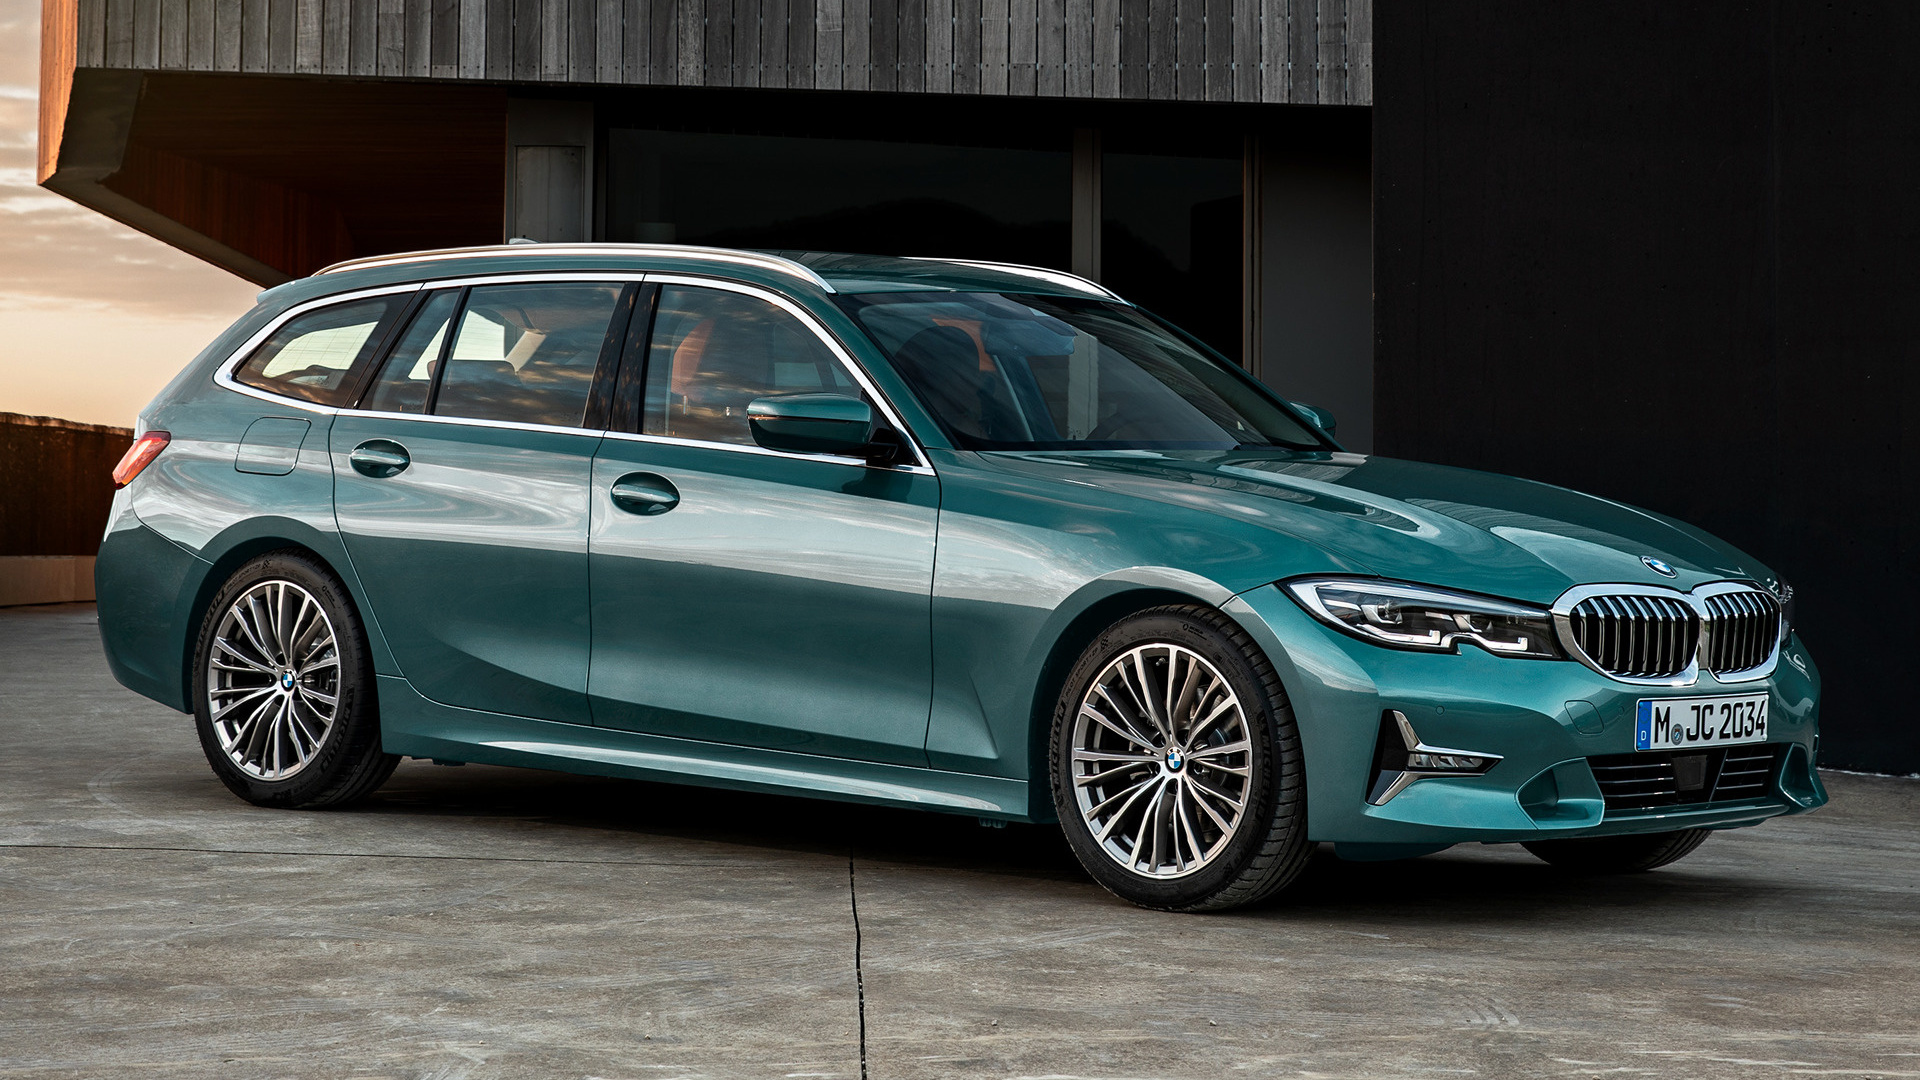 Ed Martin Gmc >> 2019 BMW 3 Series Touring - Wallpapers and HD Images | Car ...